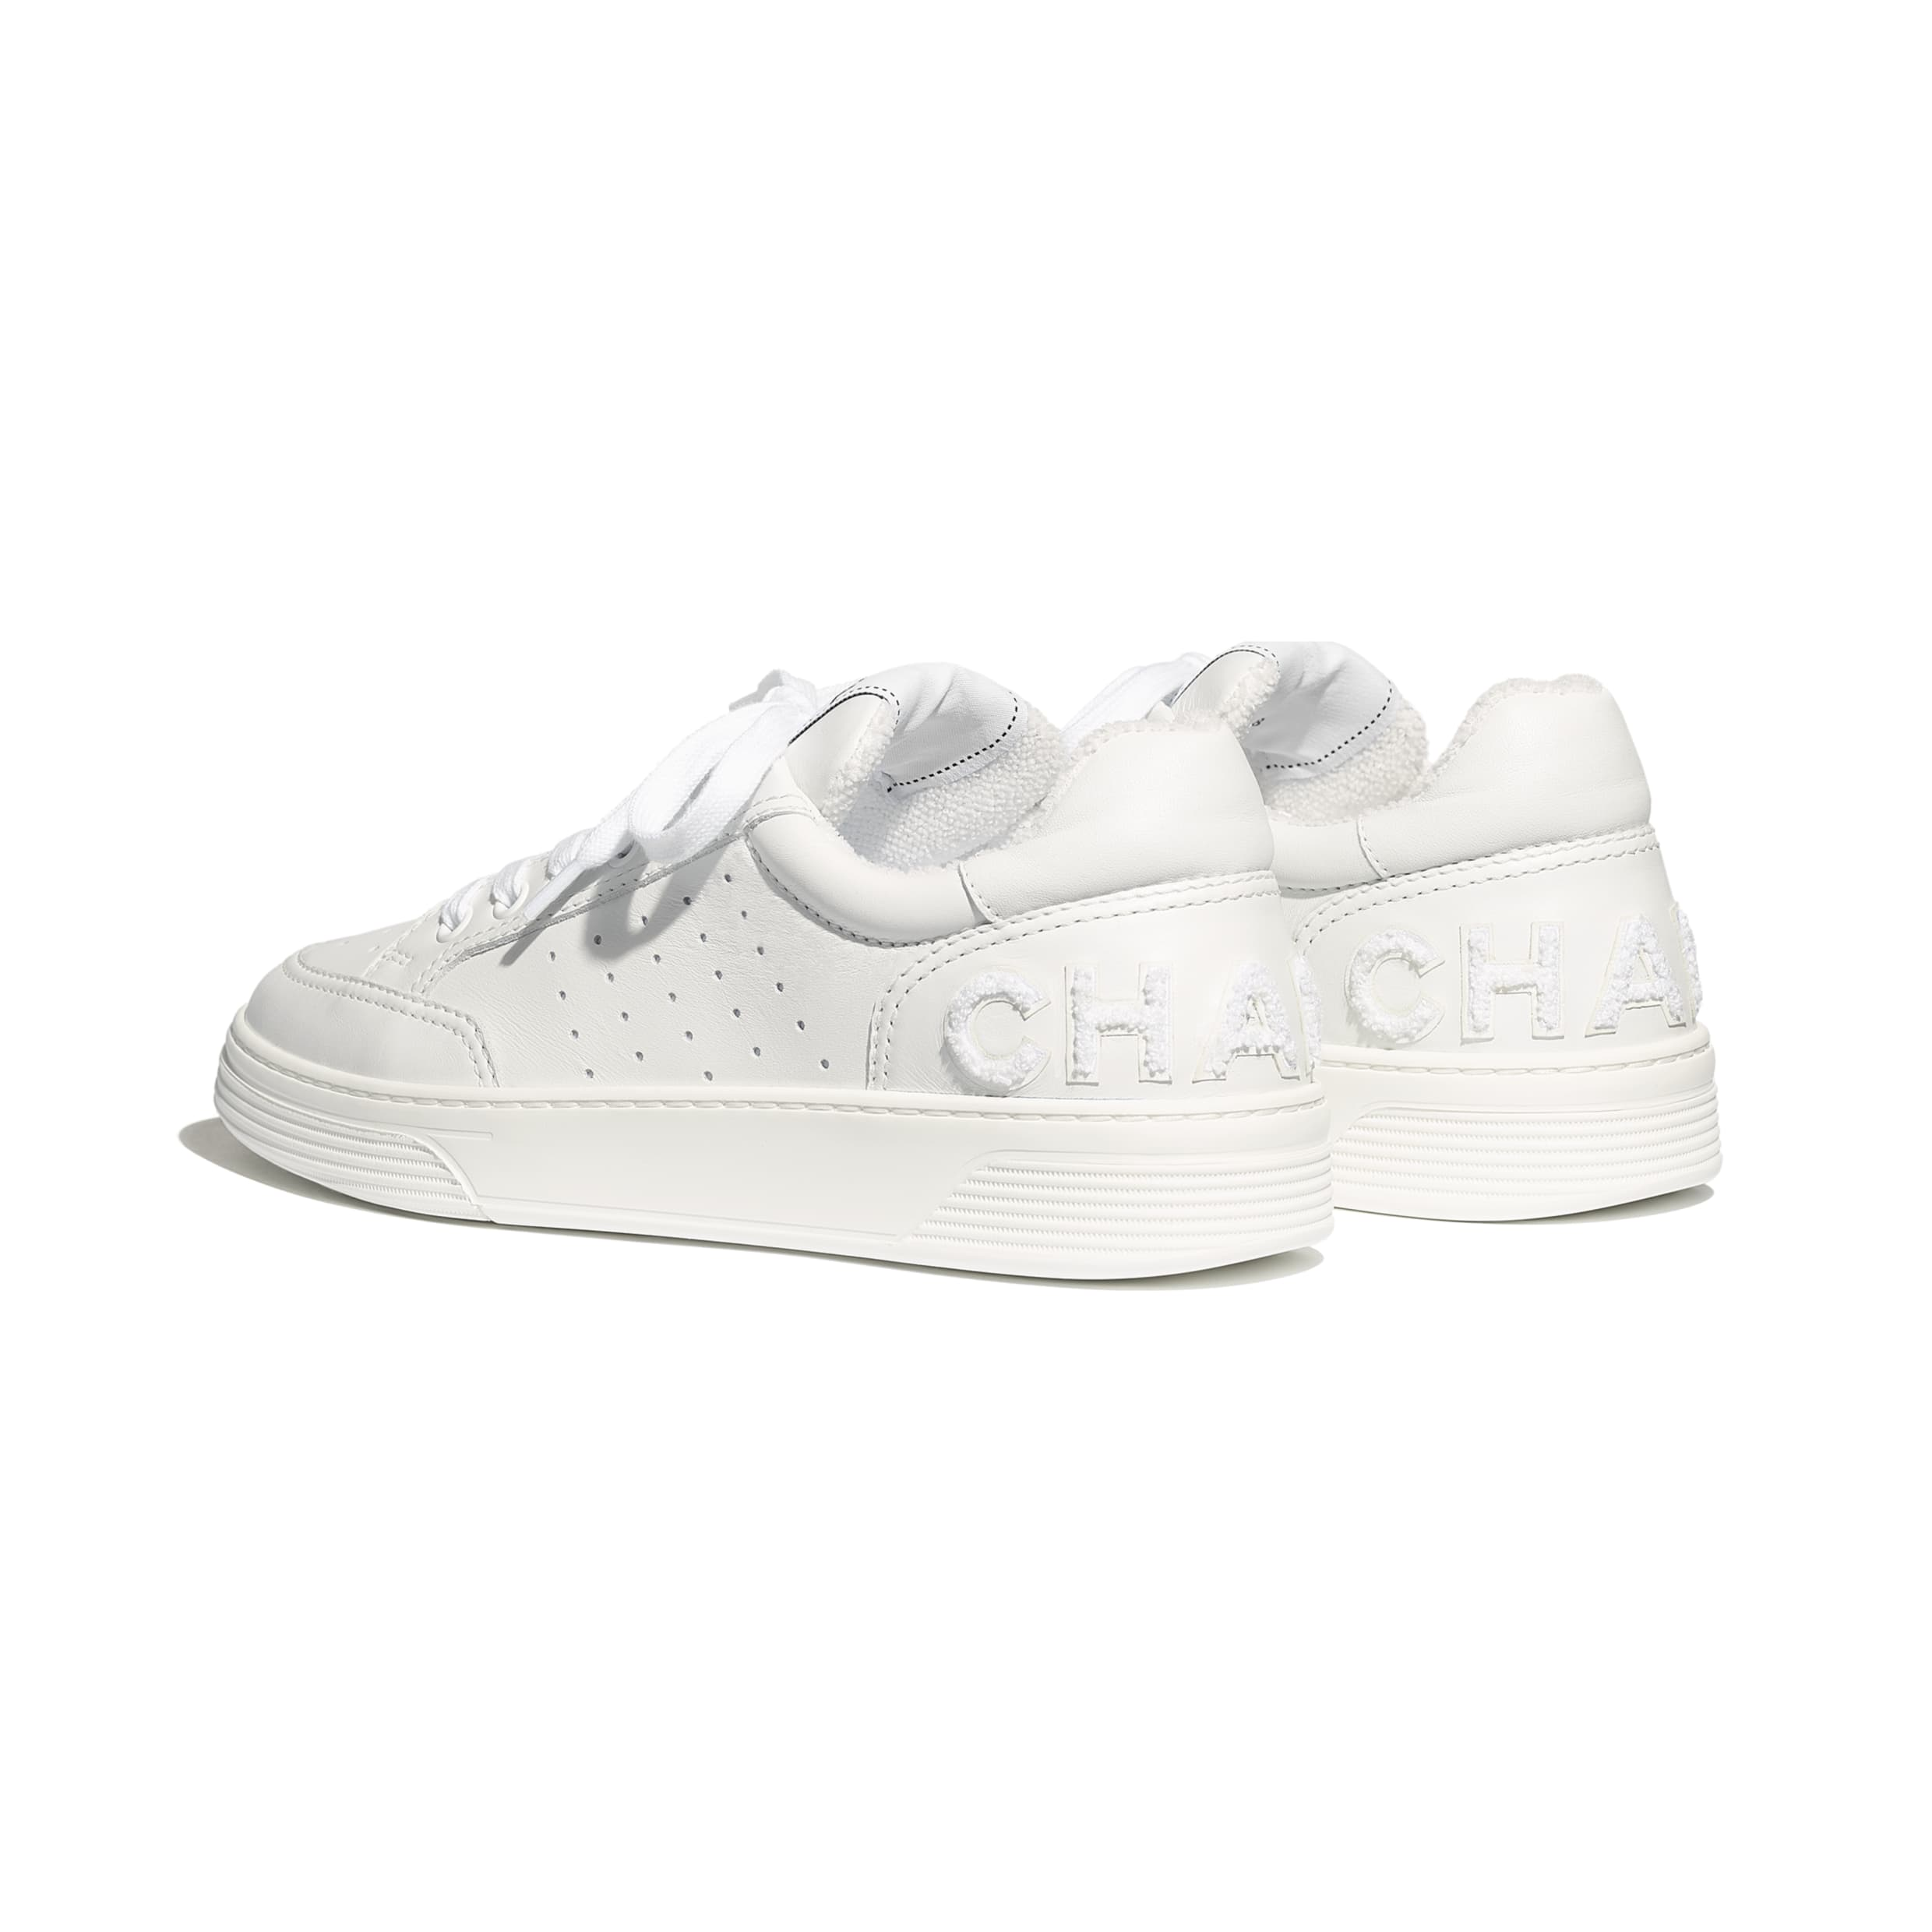 Chanel Sneakers | Today's Fashion Item